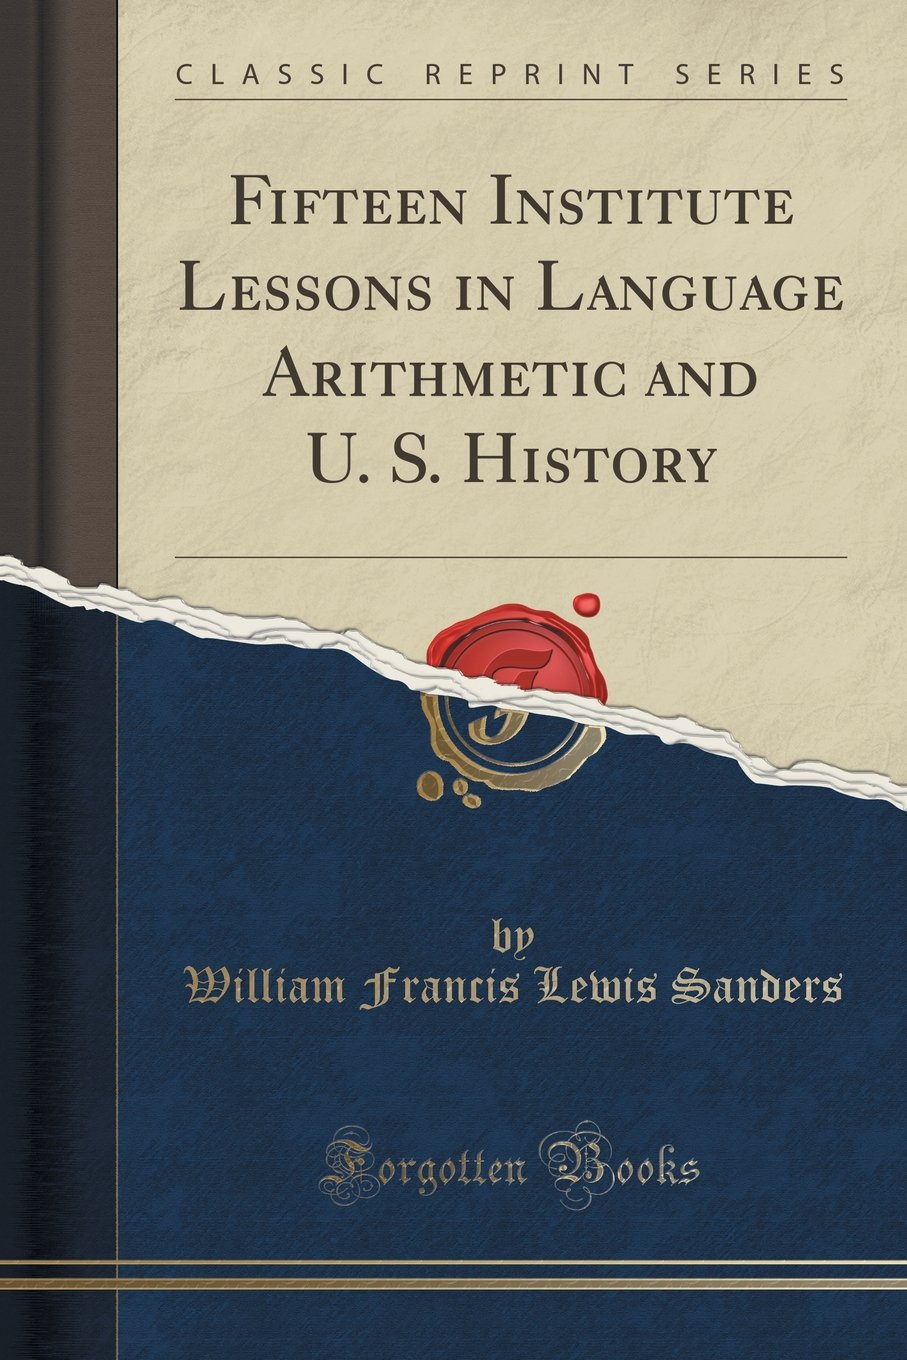 Download Fifteen Institute Lessons in Language Arithmetic and U. S. History (Classic Reprint) ebook